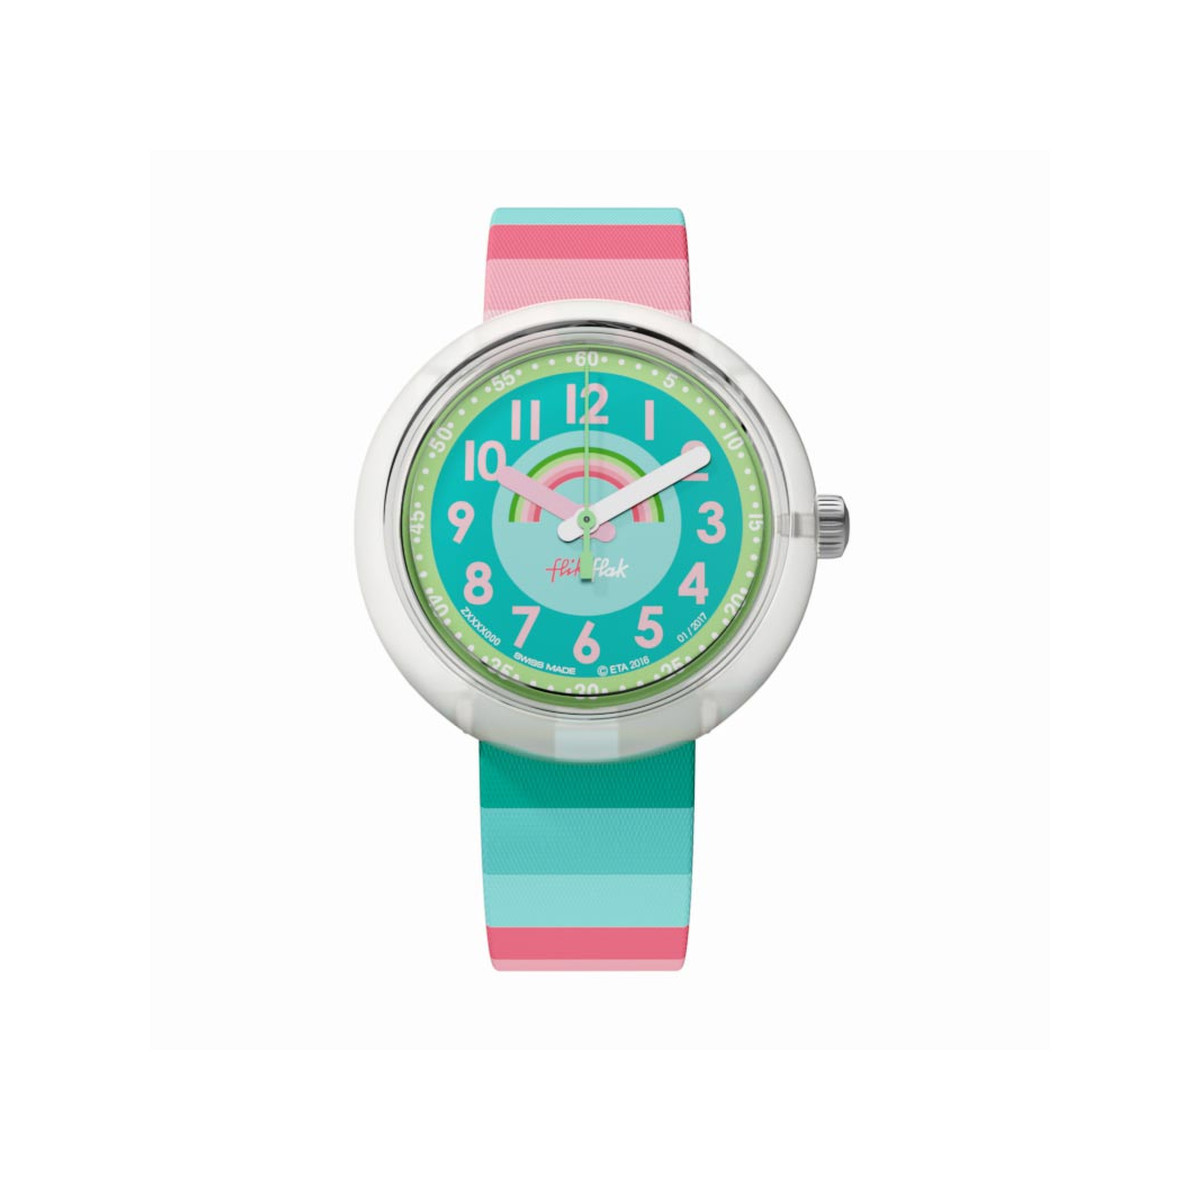 Montre Flik Flak fille Stripy Dreams multicolore - vue 1